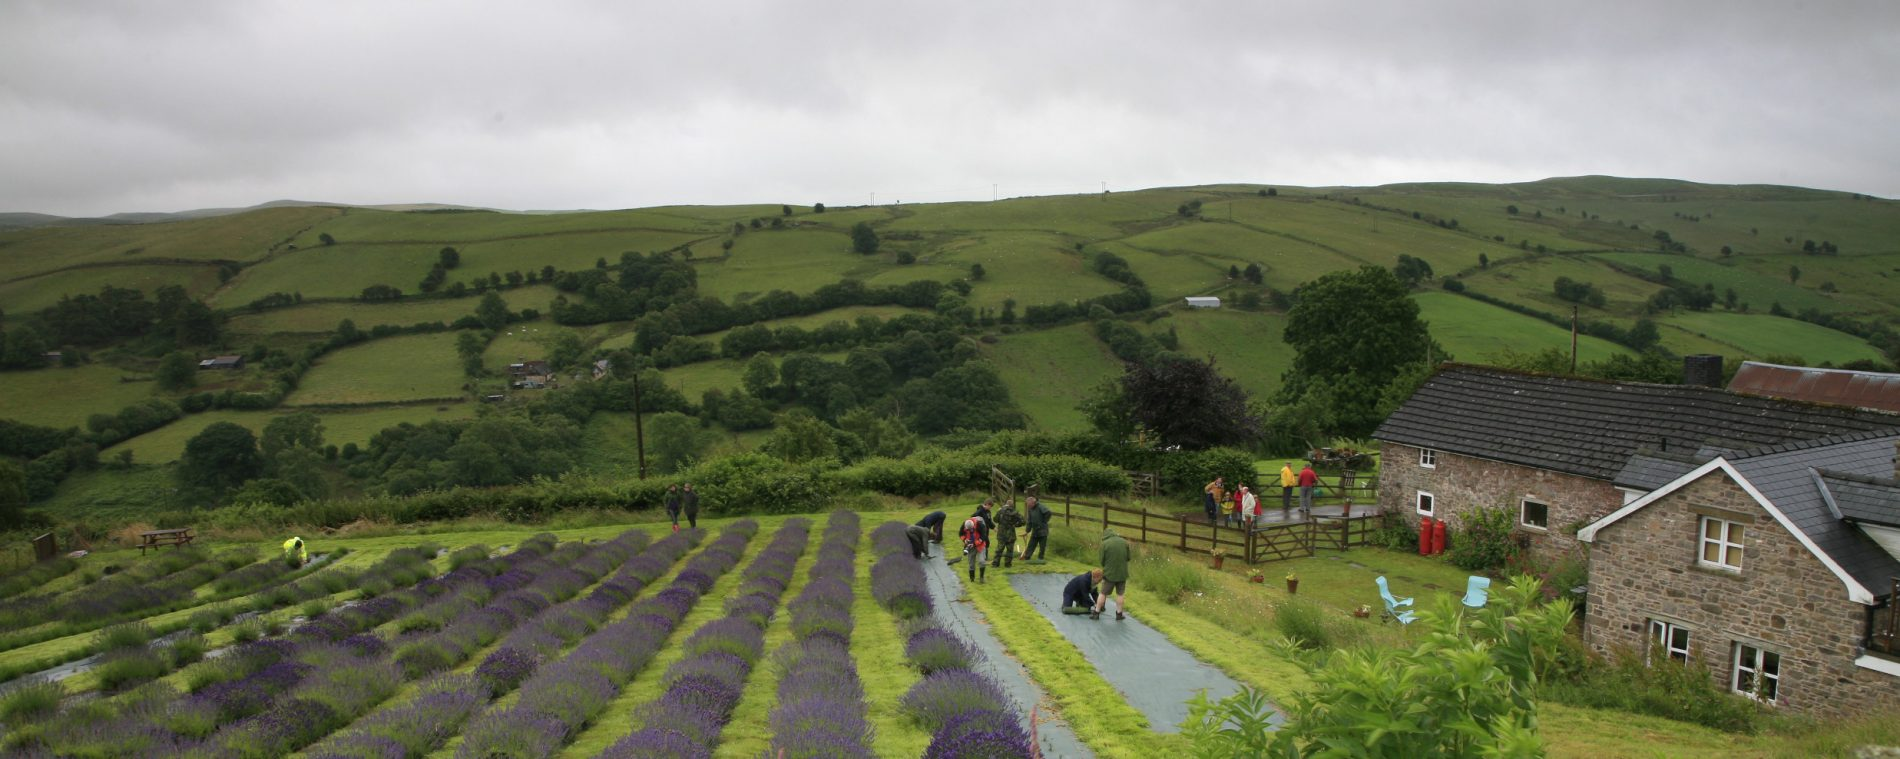 FARMERS' at work in the lavender field